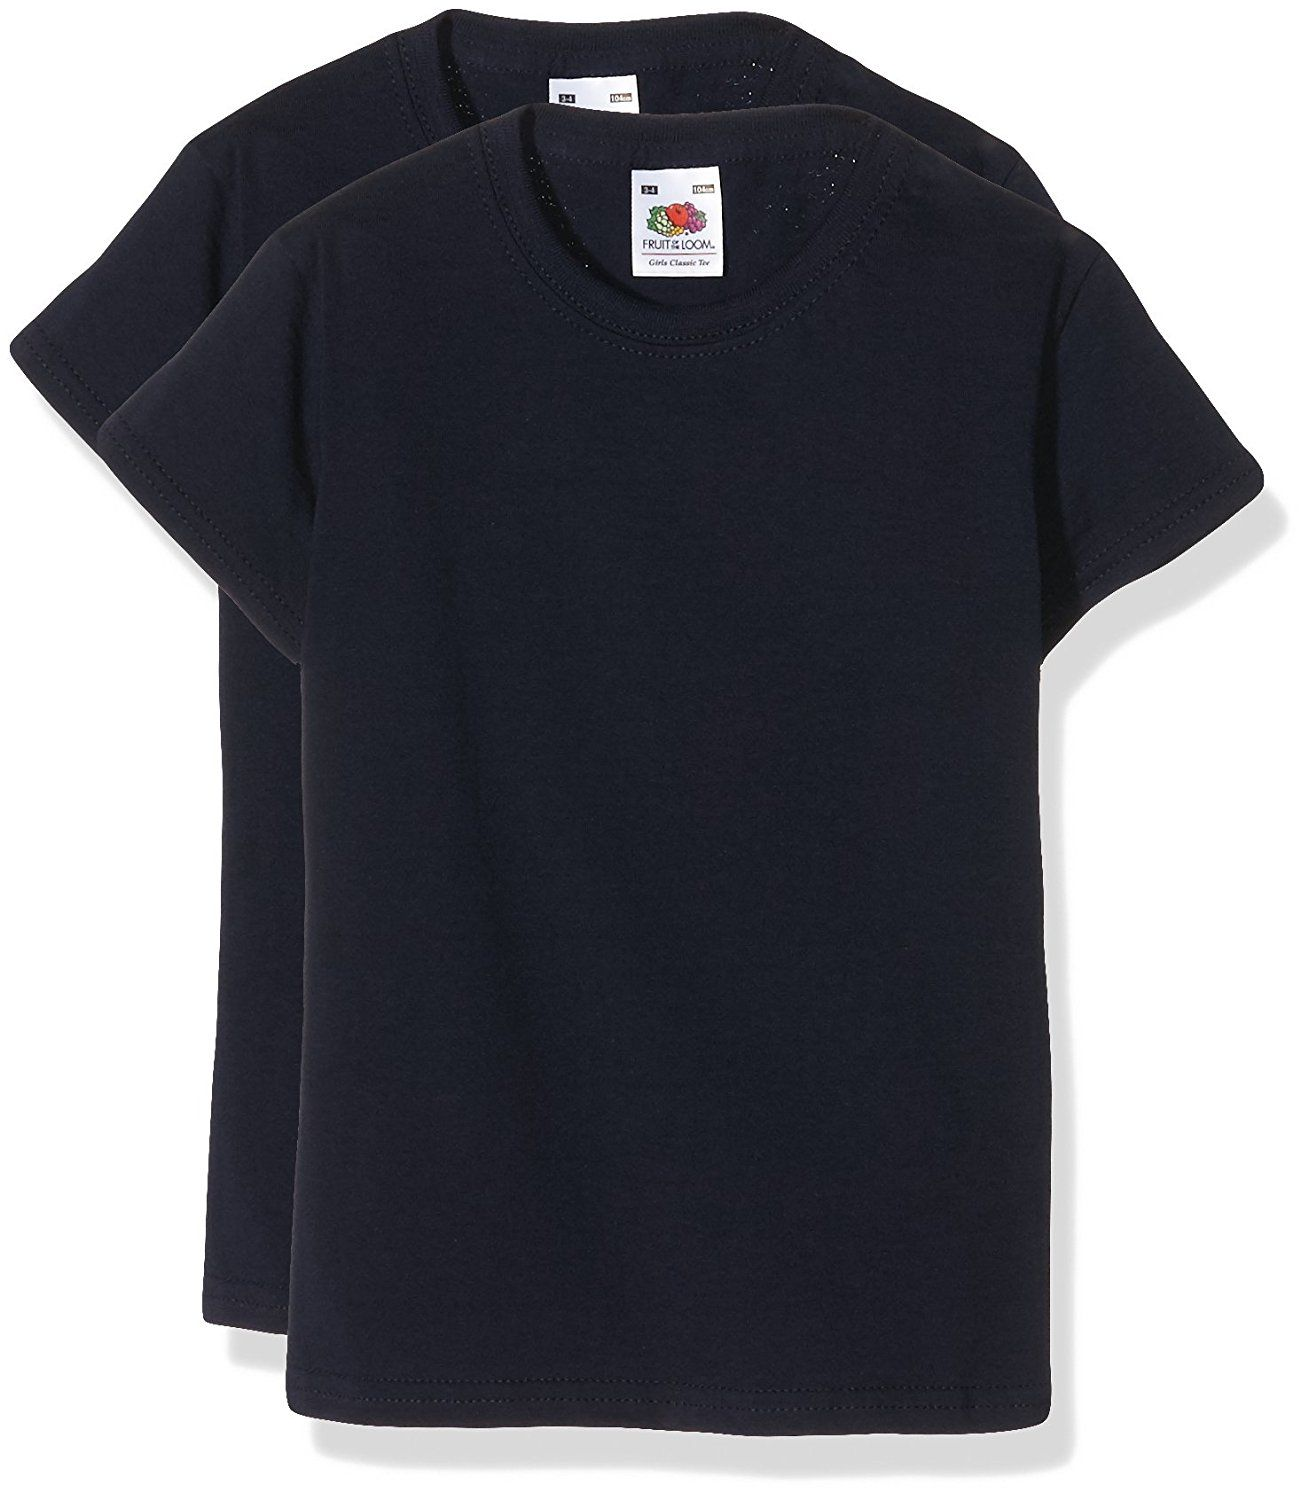 Fruit of the Loom Bugle Tee Shirt BLue with black, very